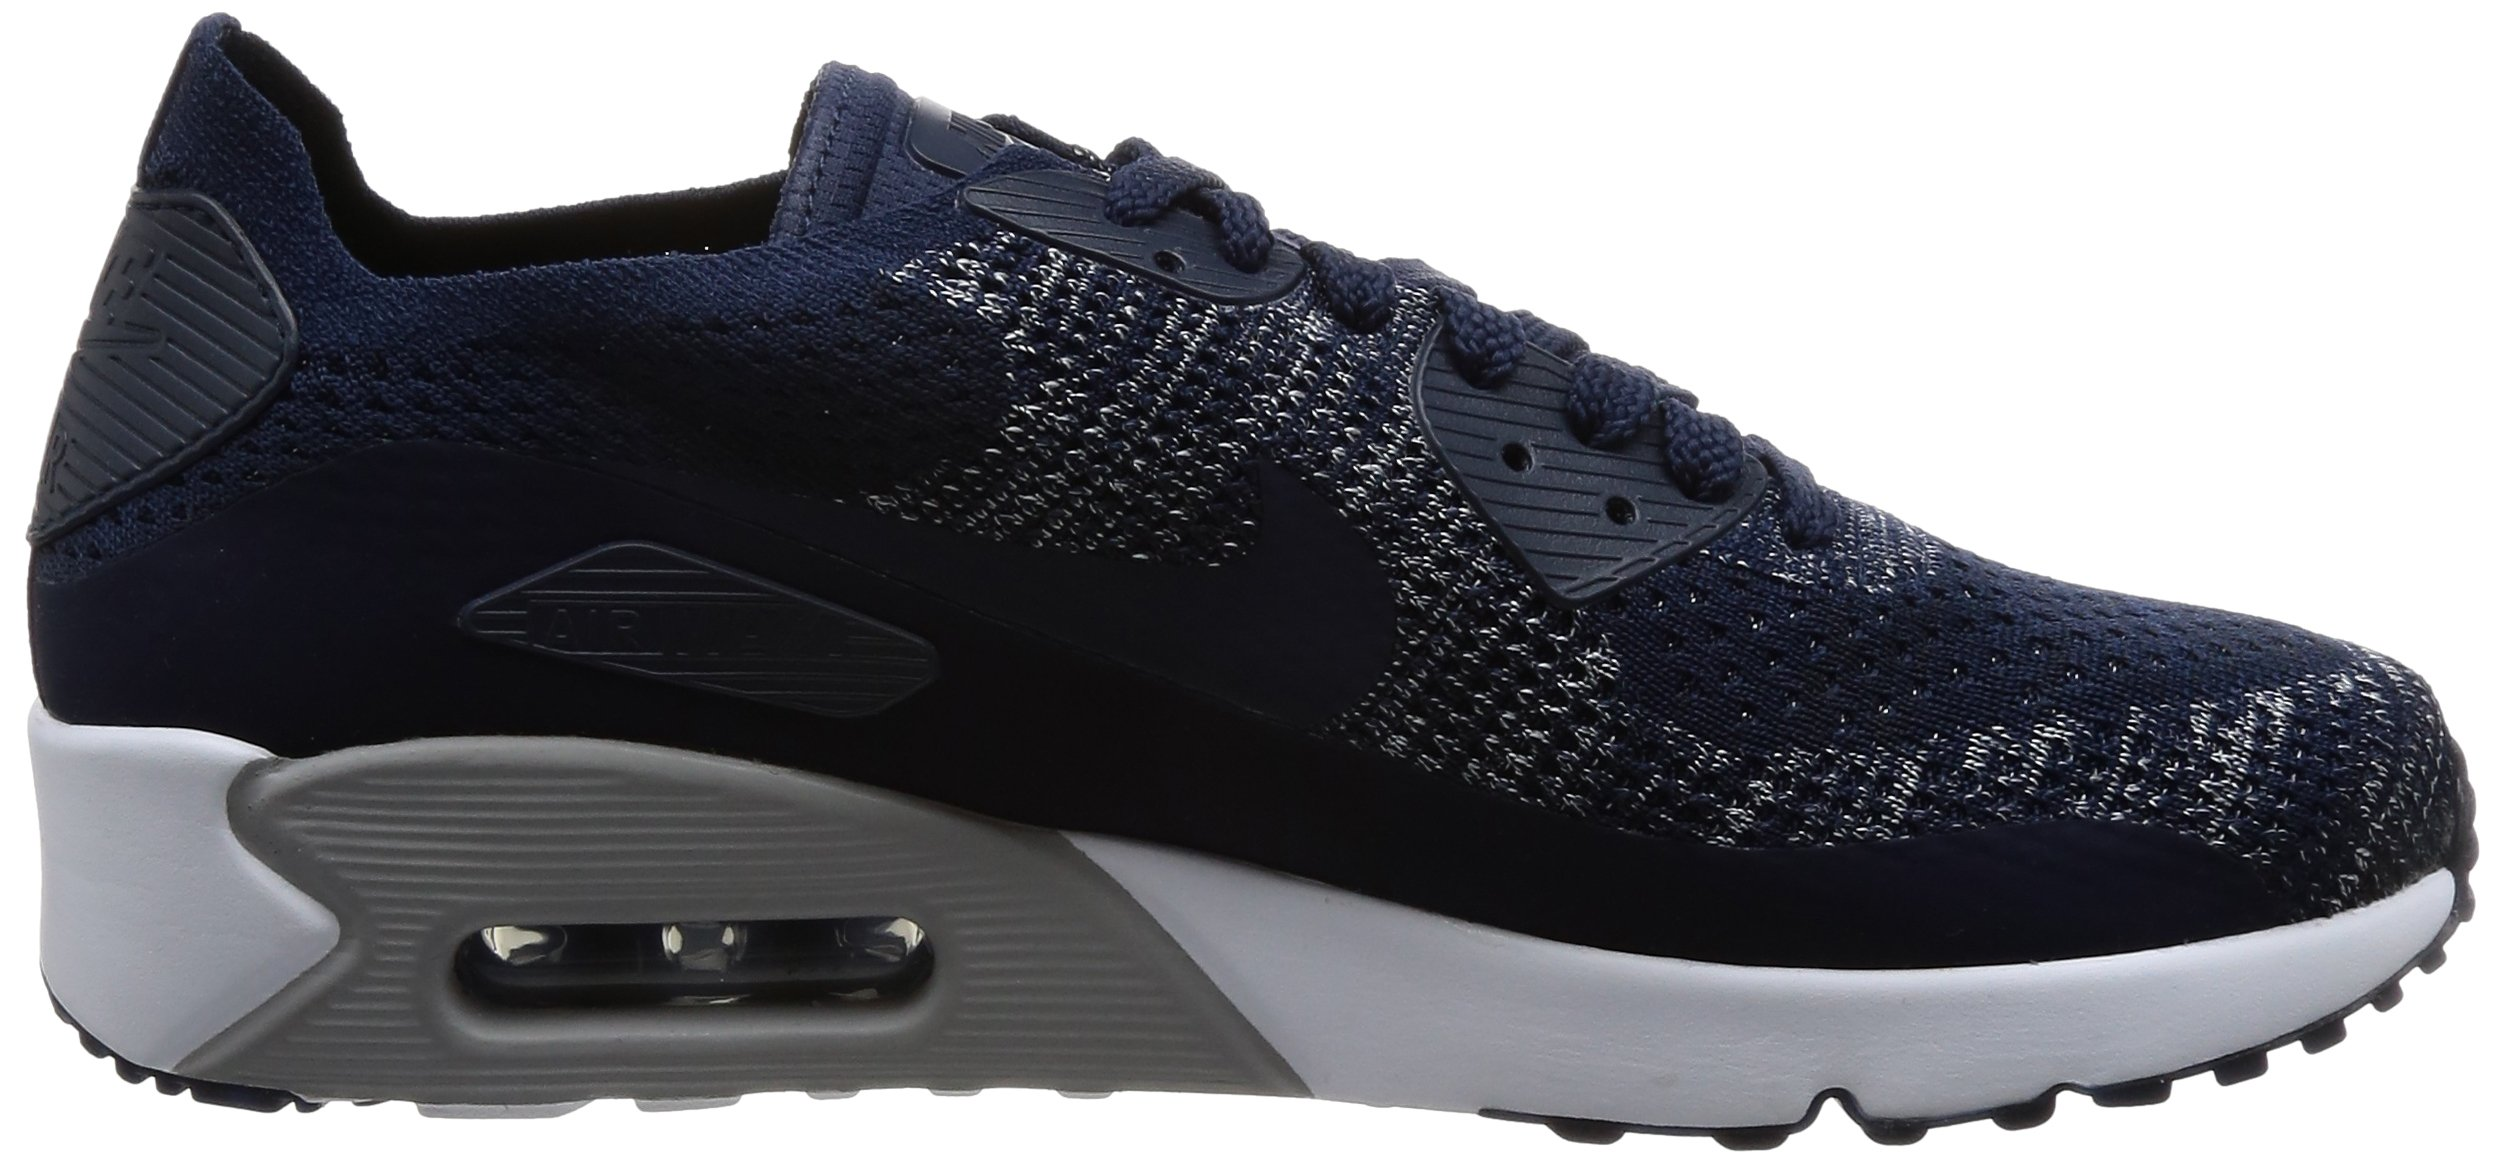 NIKE Mens Air Max 90 Ultra 2.0 Flyknit College/Navy/College/Navy Running Shoe 9.5 Men US